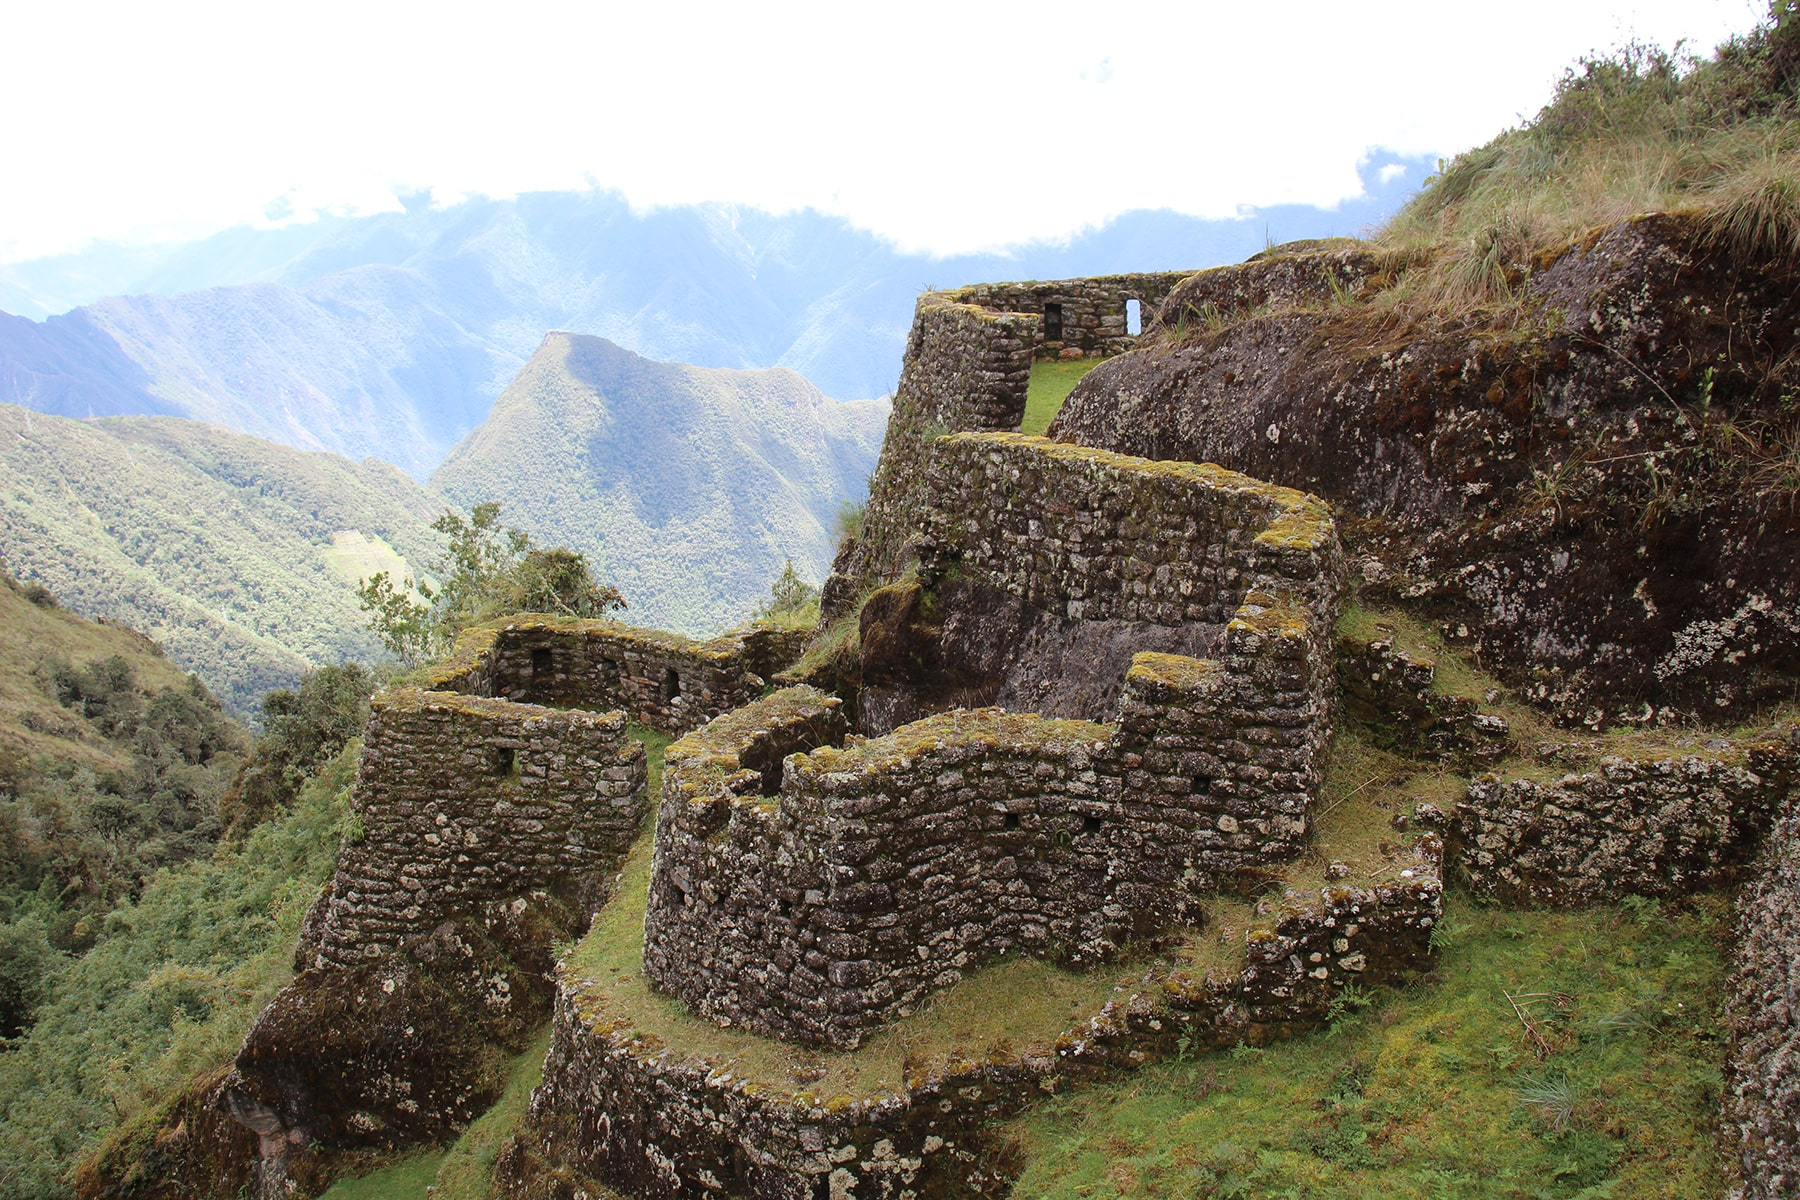 Some buildings of Phuyupatamarka site inca trail